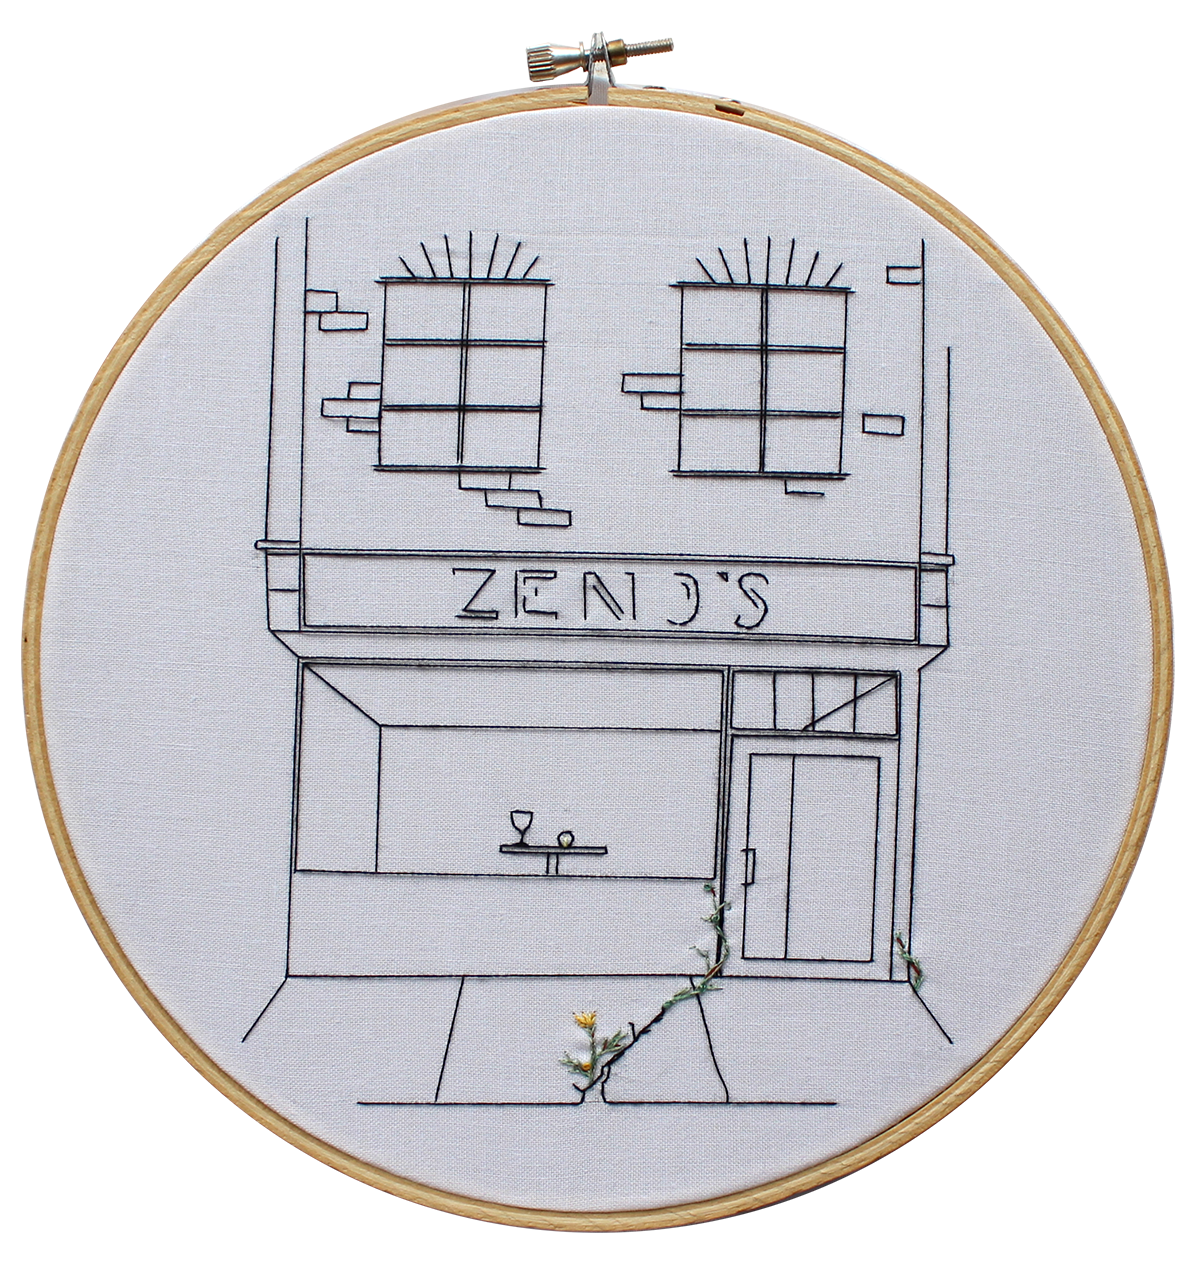 Embroidery of a restaurant's exterior. There is a crack in the sidewalk, with a plant growing in the crack